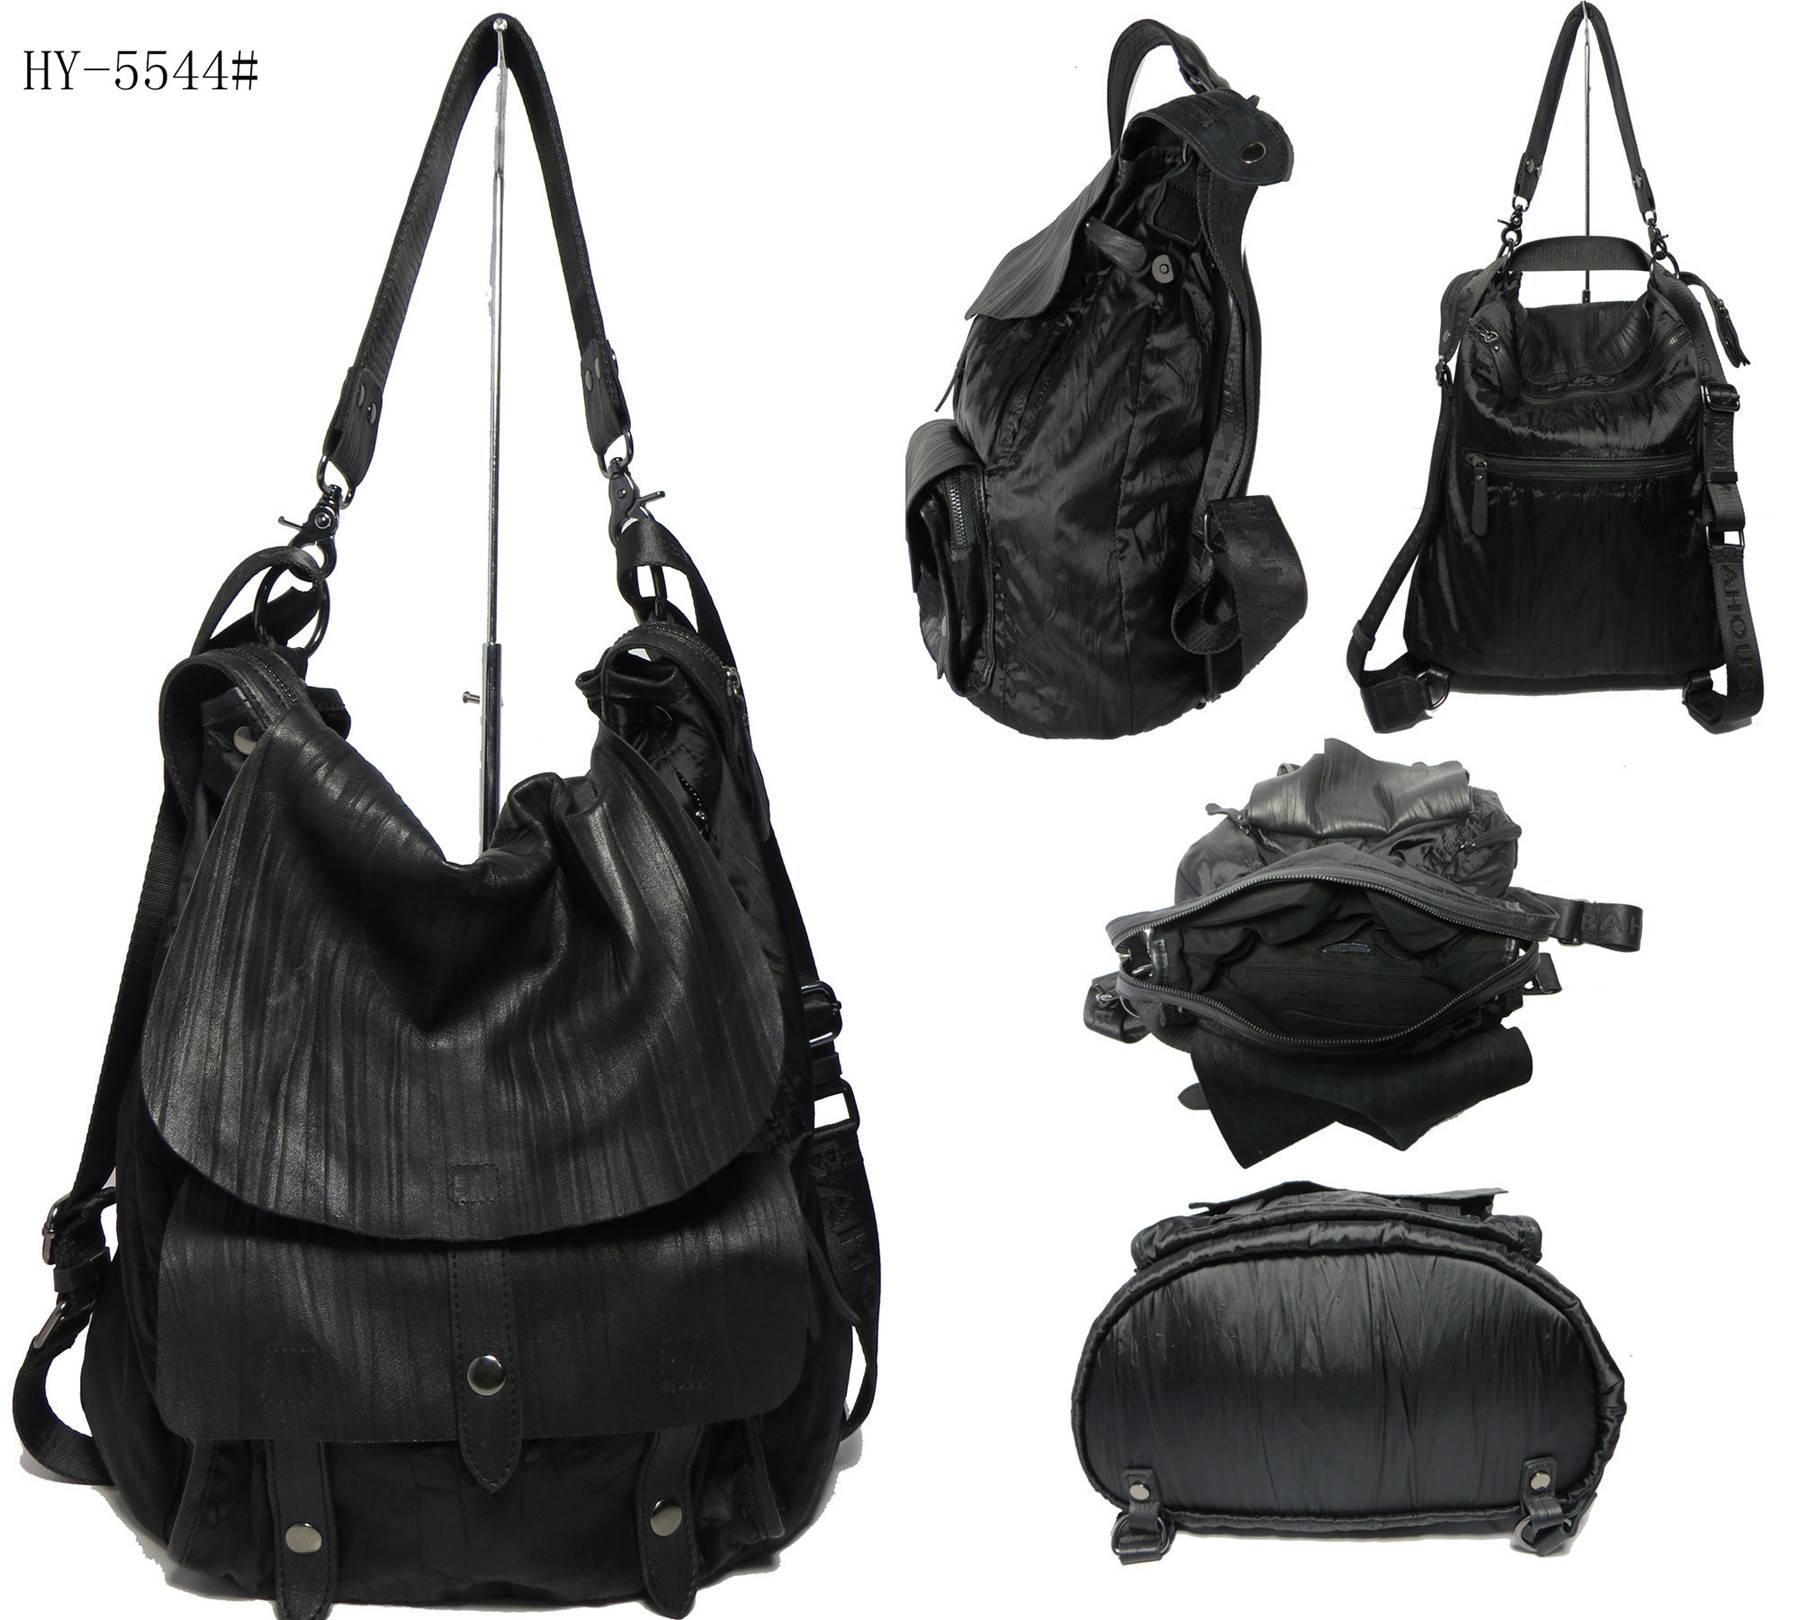 Stylish,funtional lady's handbag HY-5544#